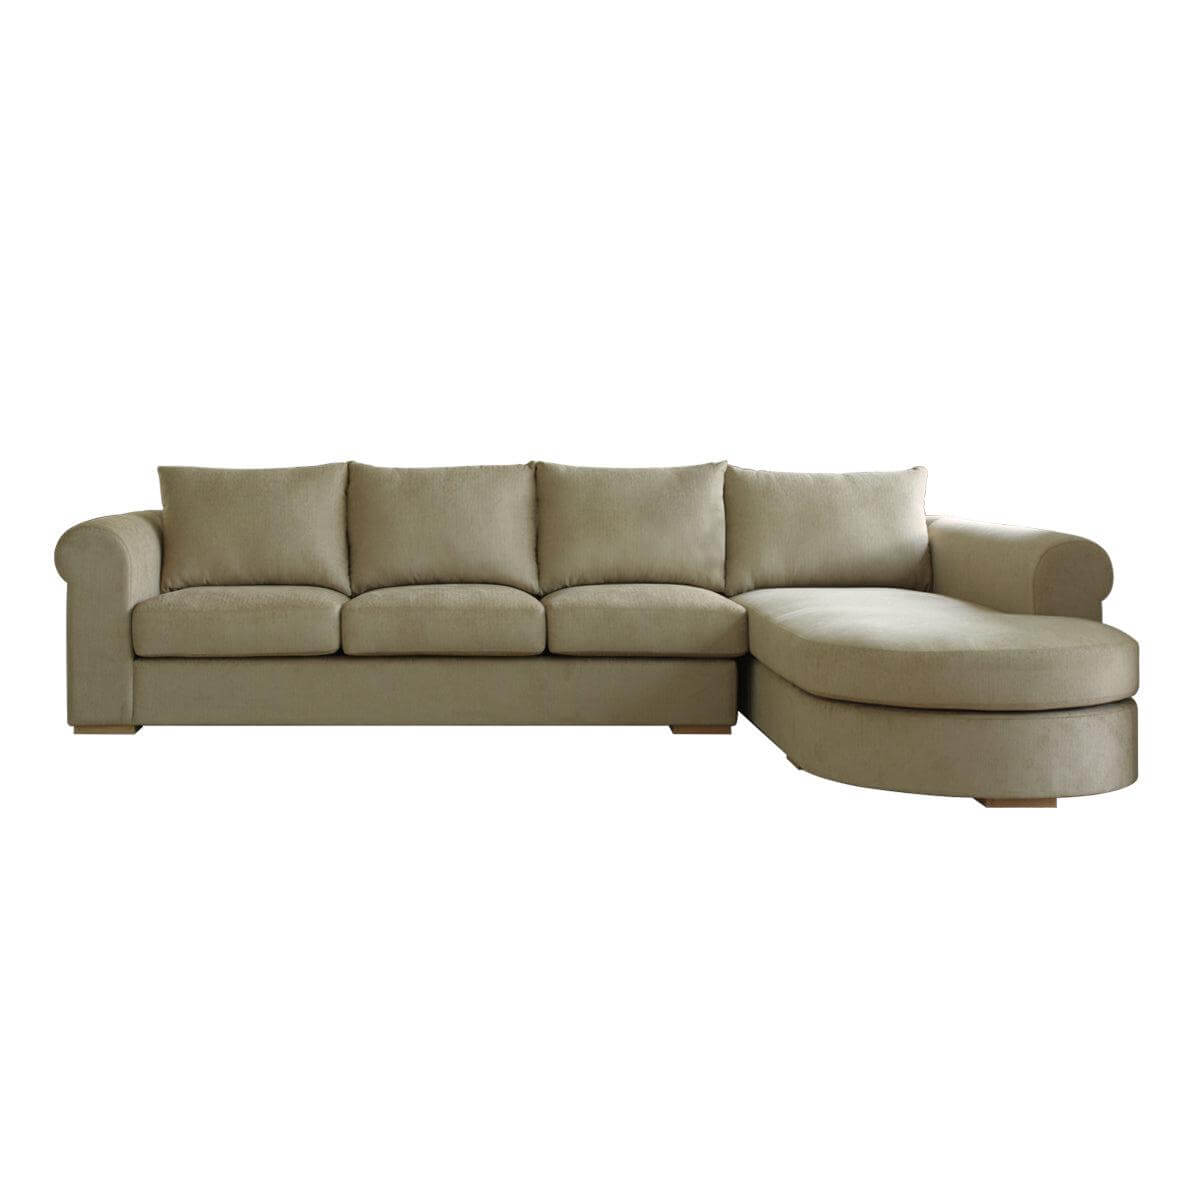 Tuscany L-shape three seat Sofa - classic look paired with modern